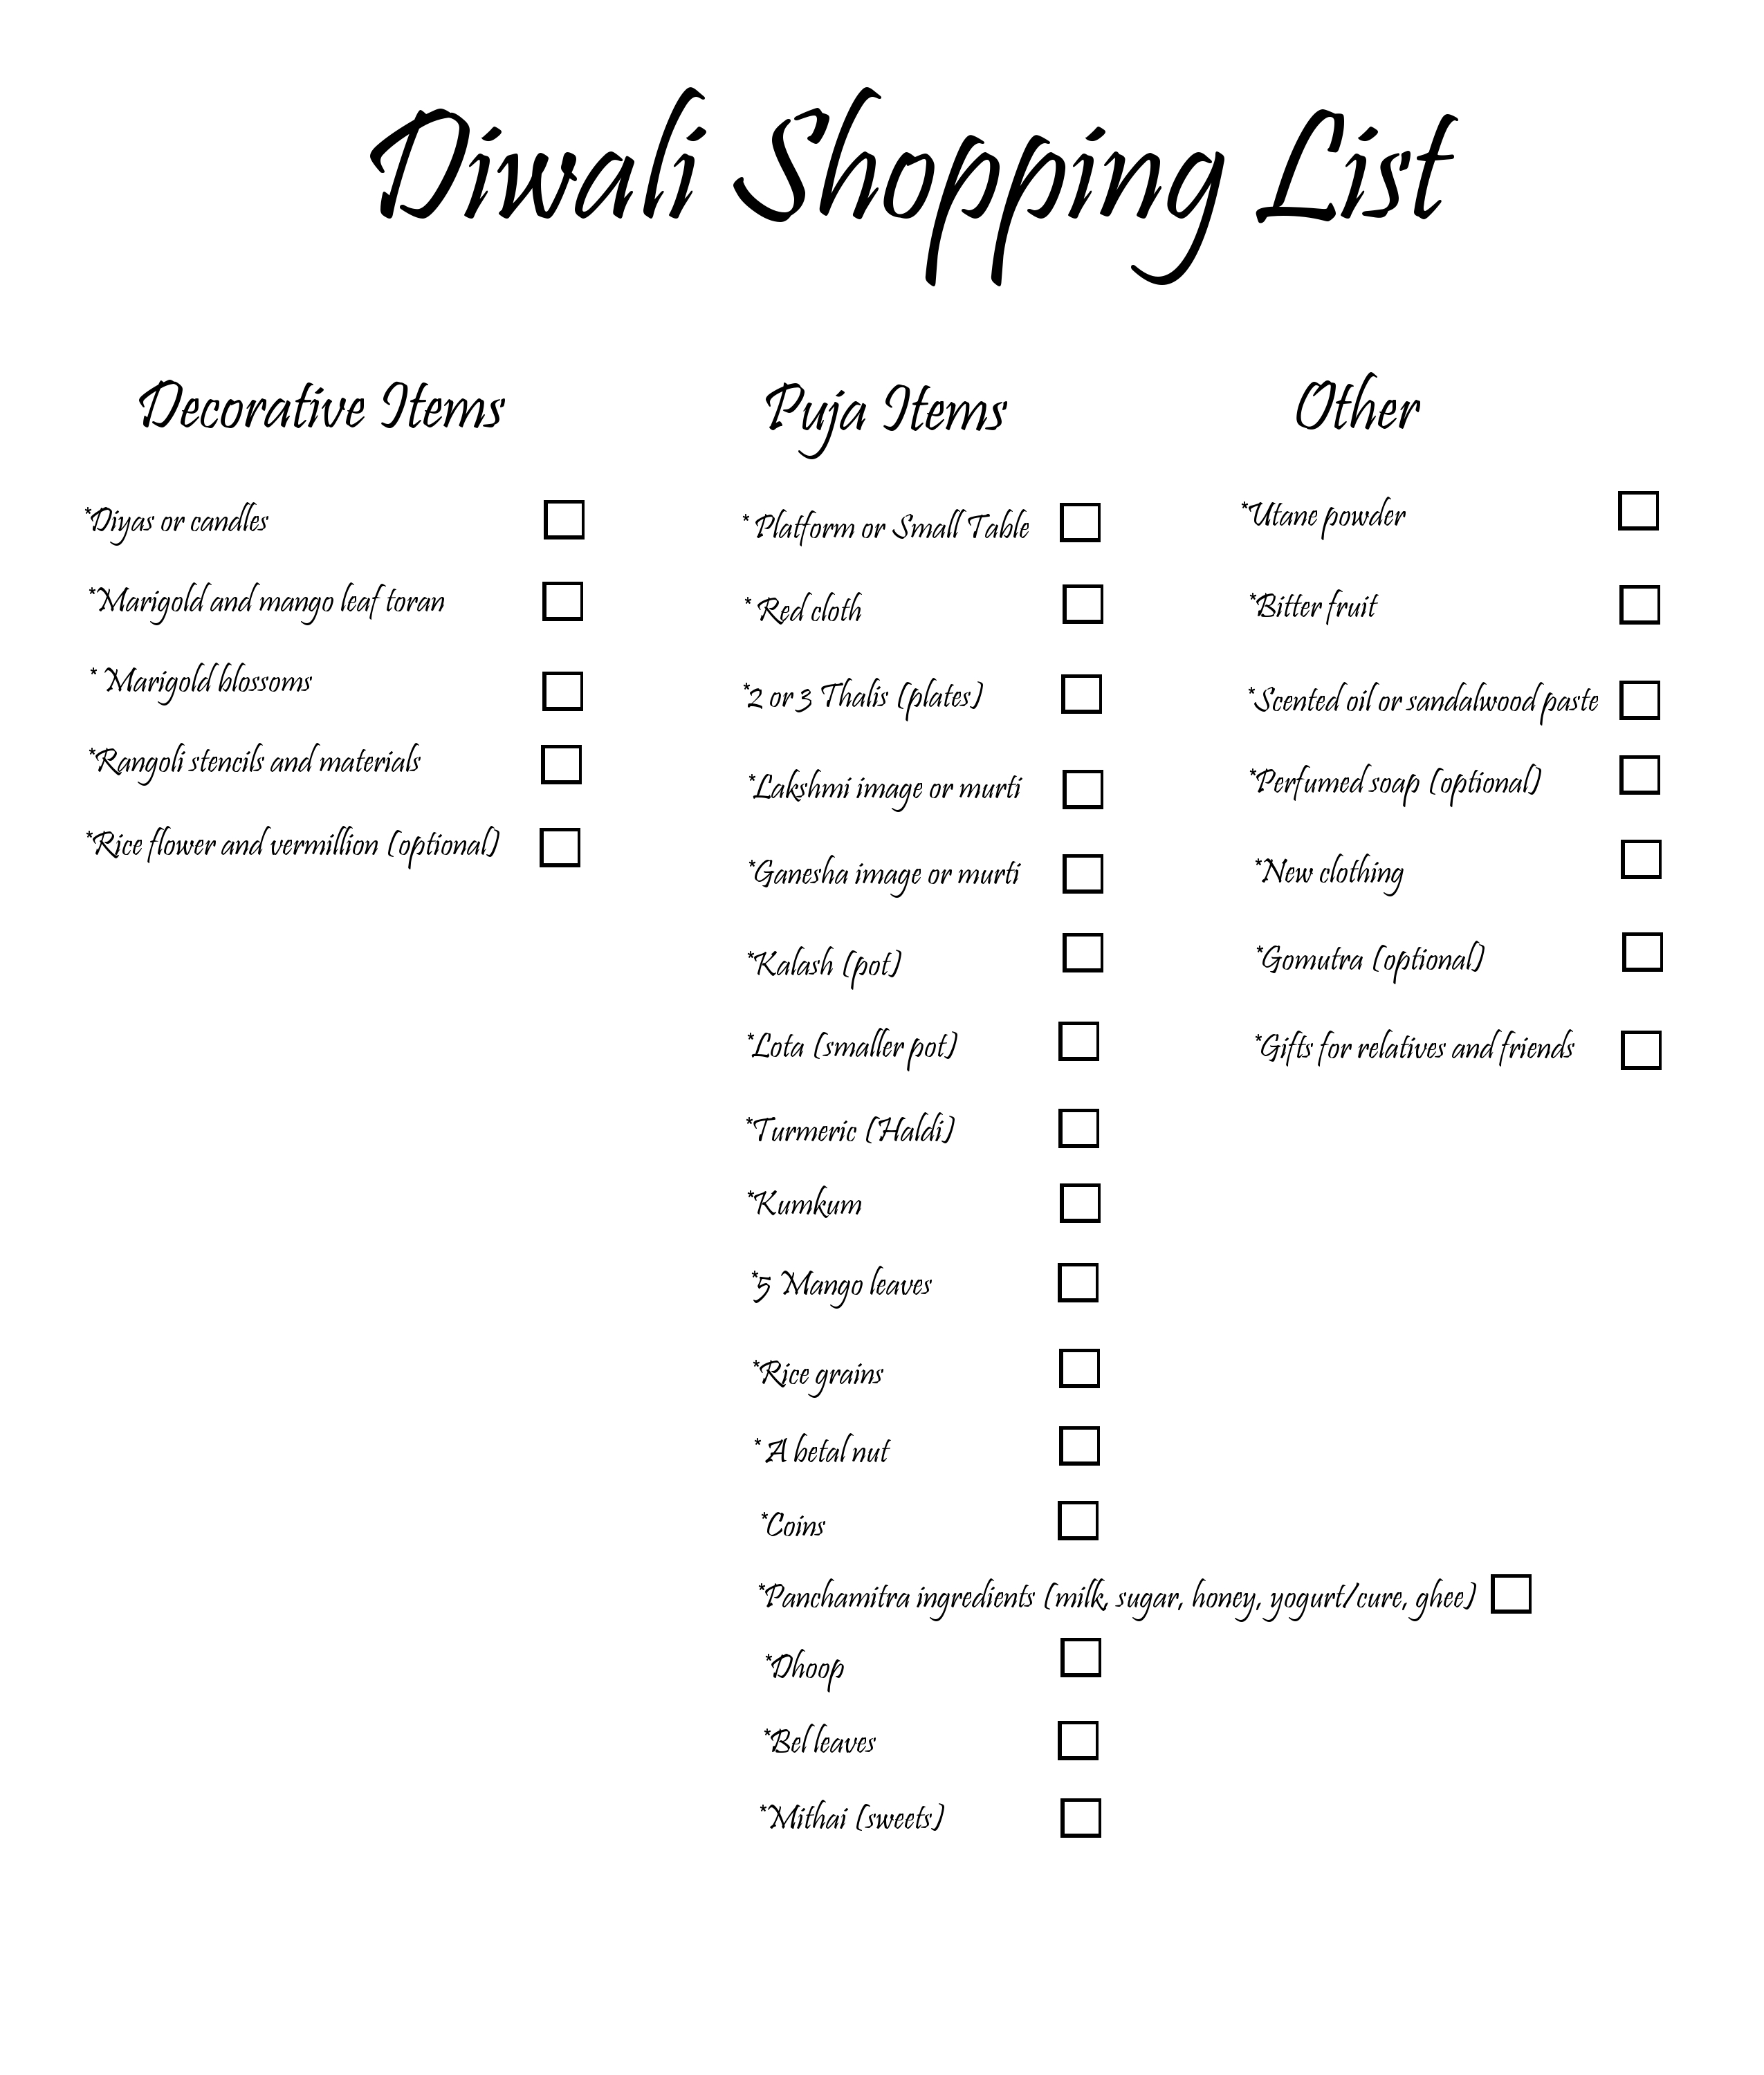 All Sweets Name Diwalishoppinglist